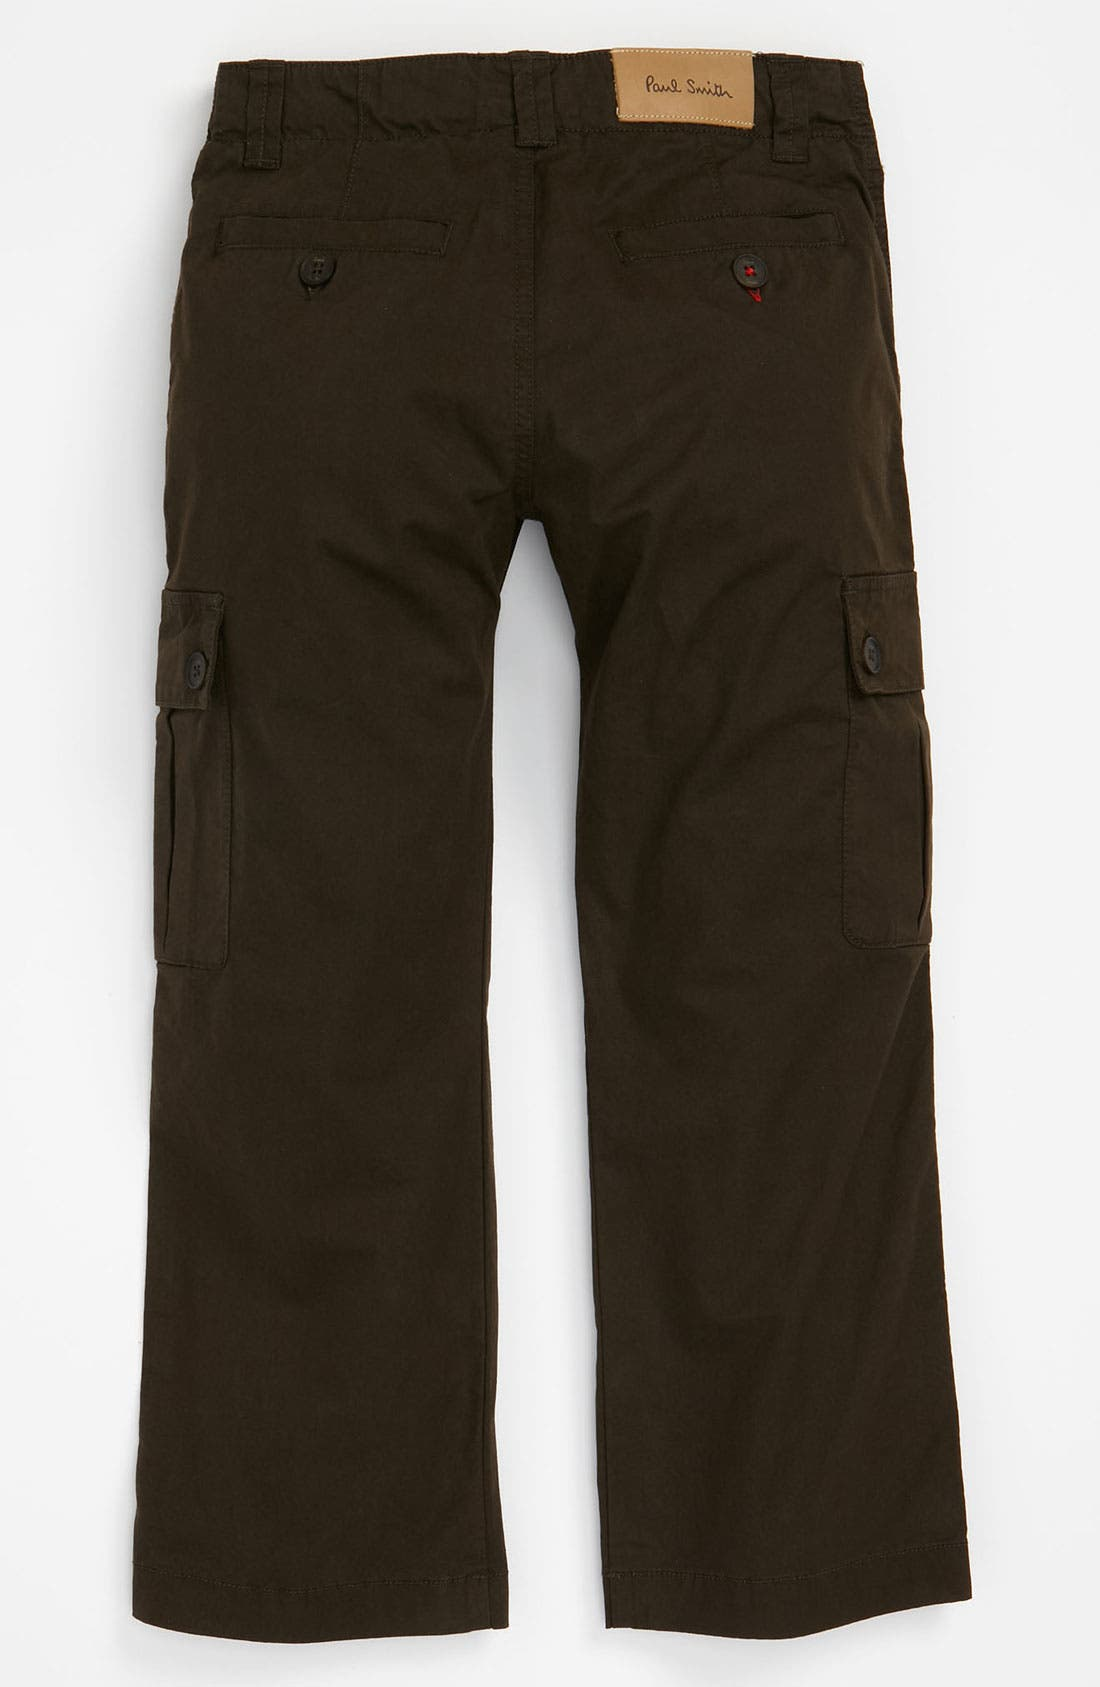 Alternate Image 1 Selected - Paul Smith Junior 'Calisto' Cargo Pants (Little Boys)